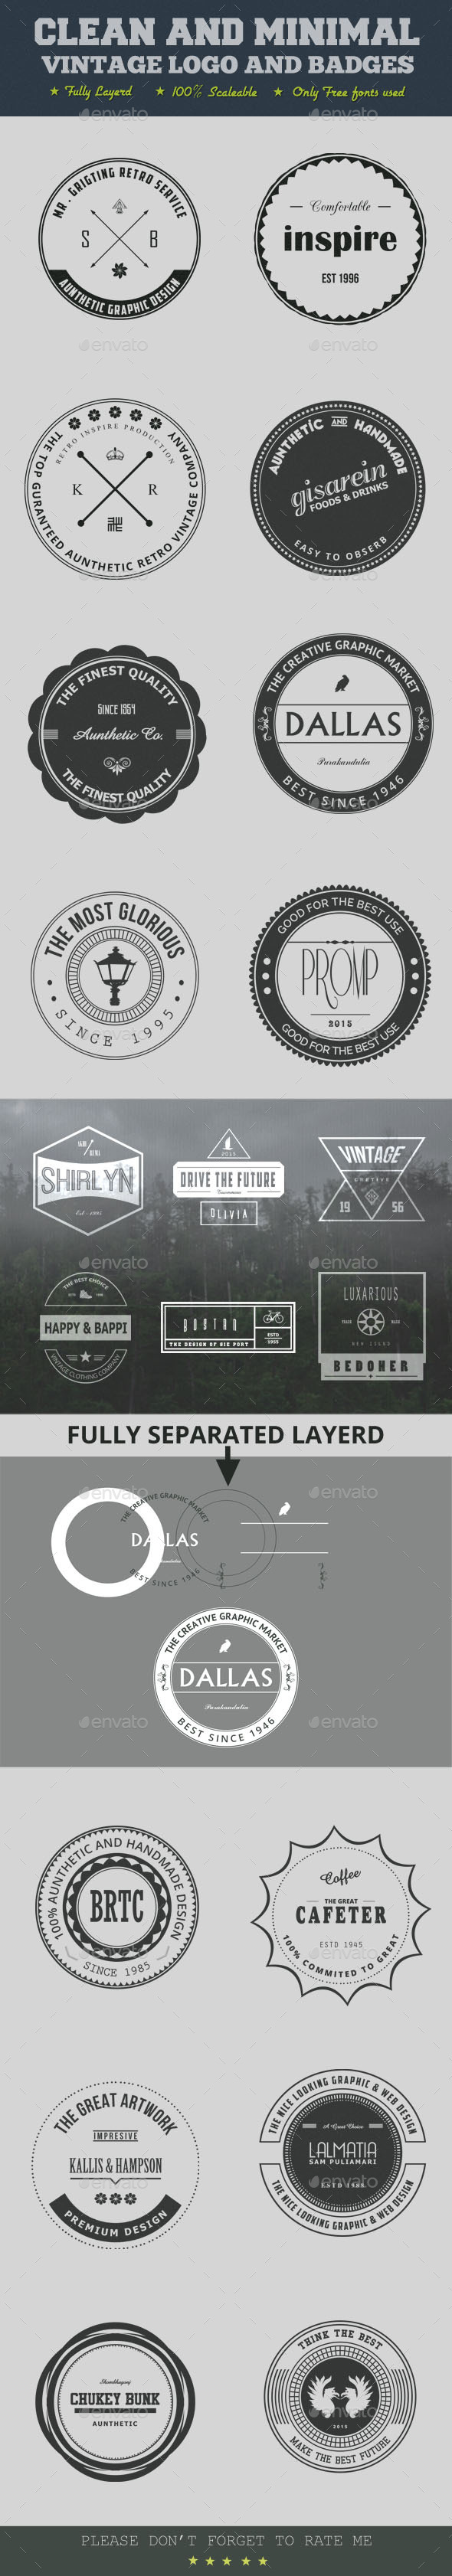 Clean And Minimal Vintage Logo And Badges - Badges & Stickers Web Elements